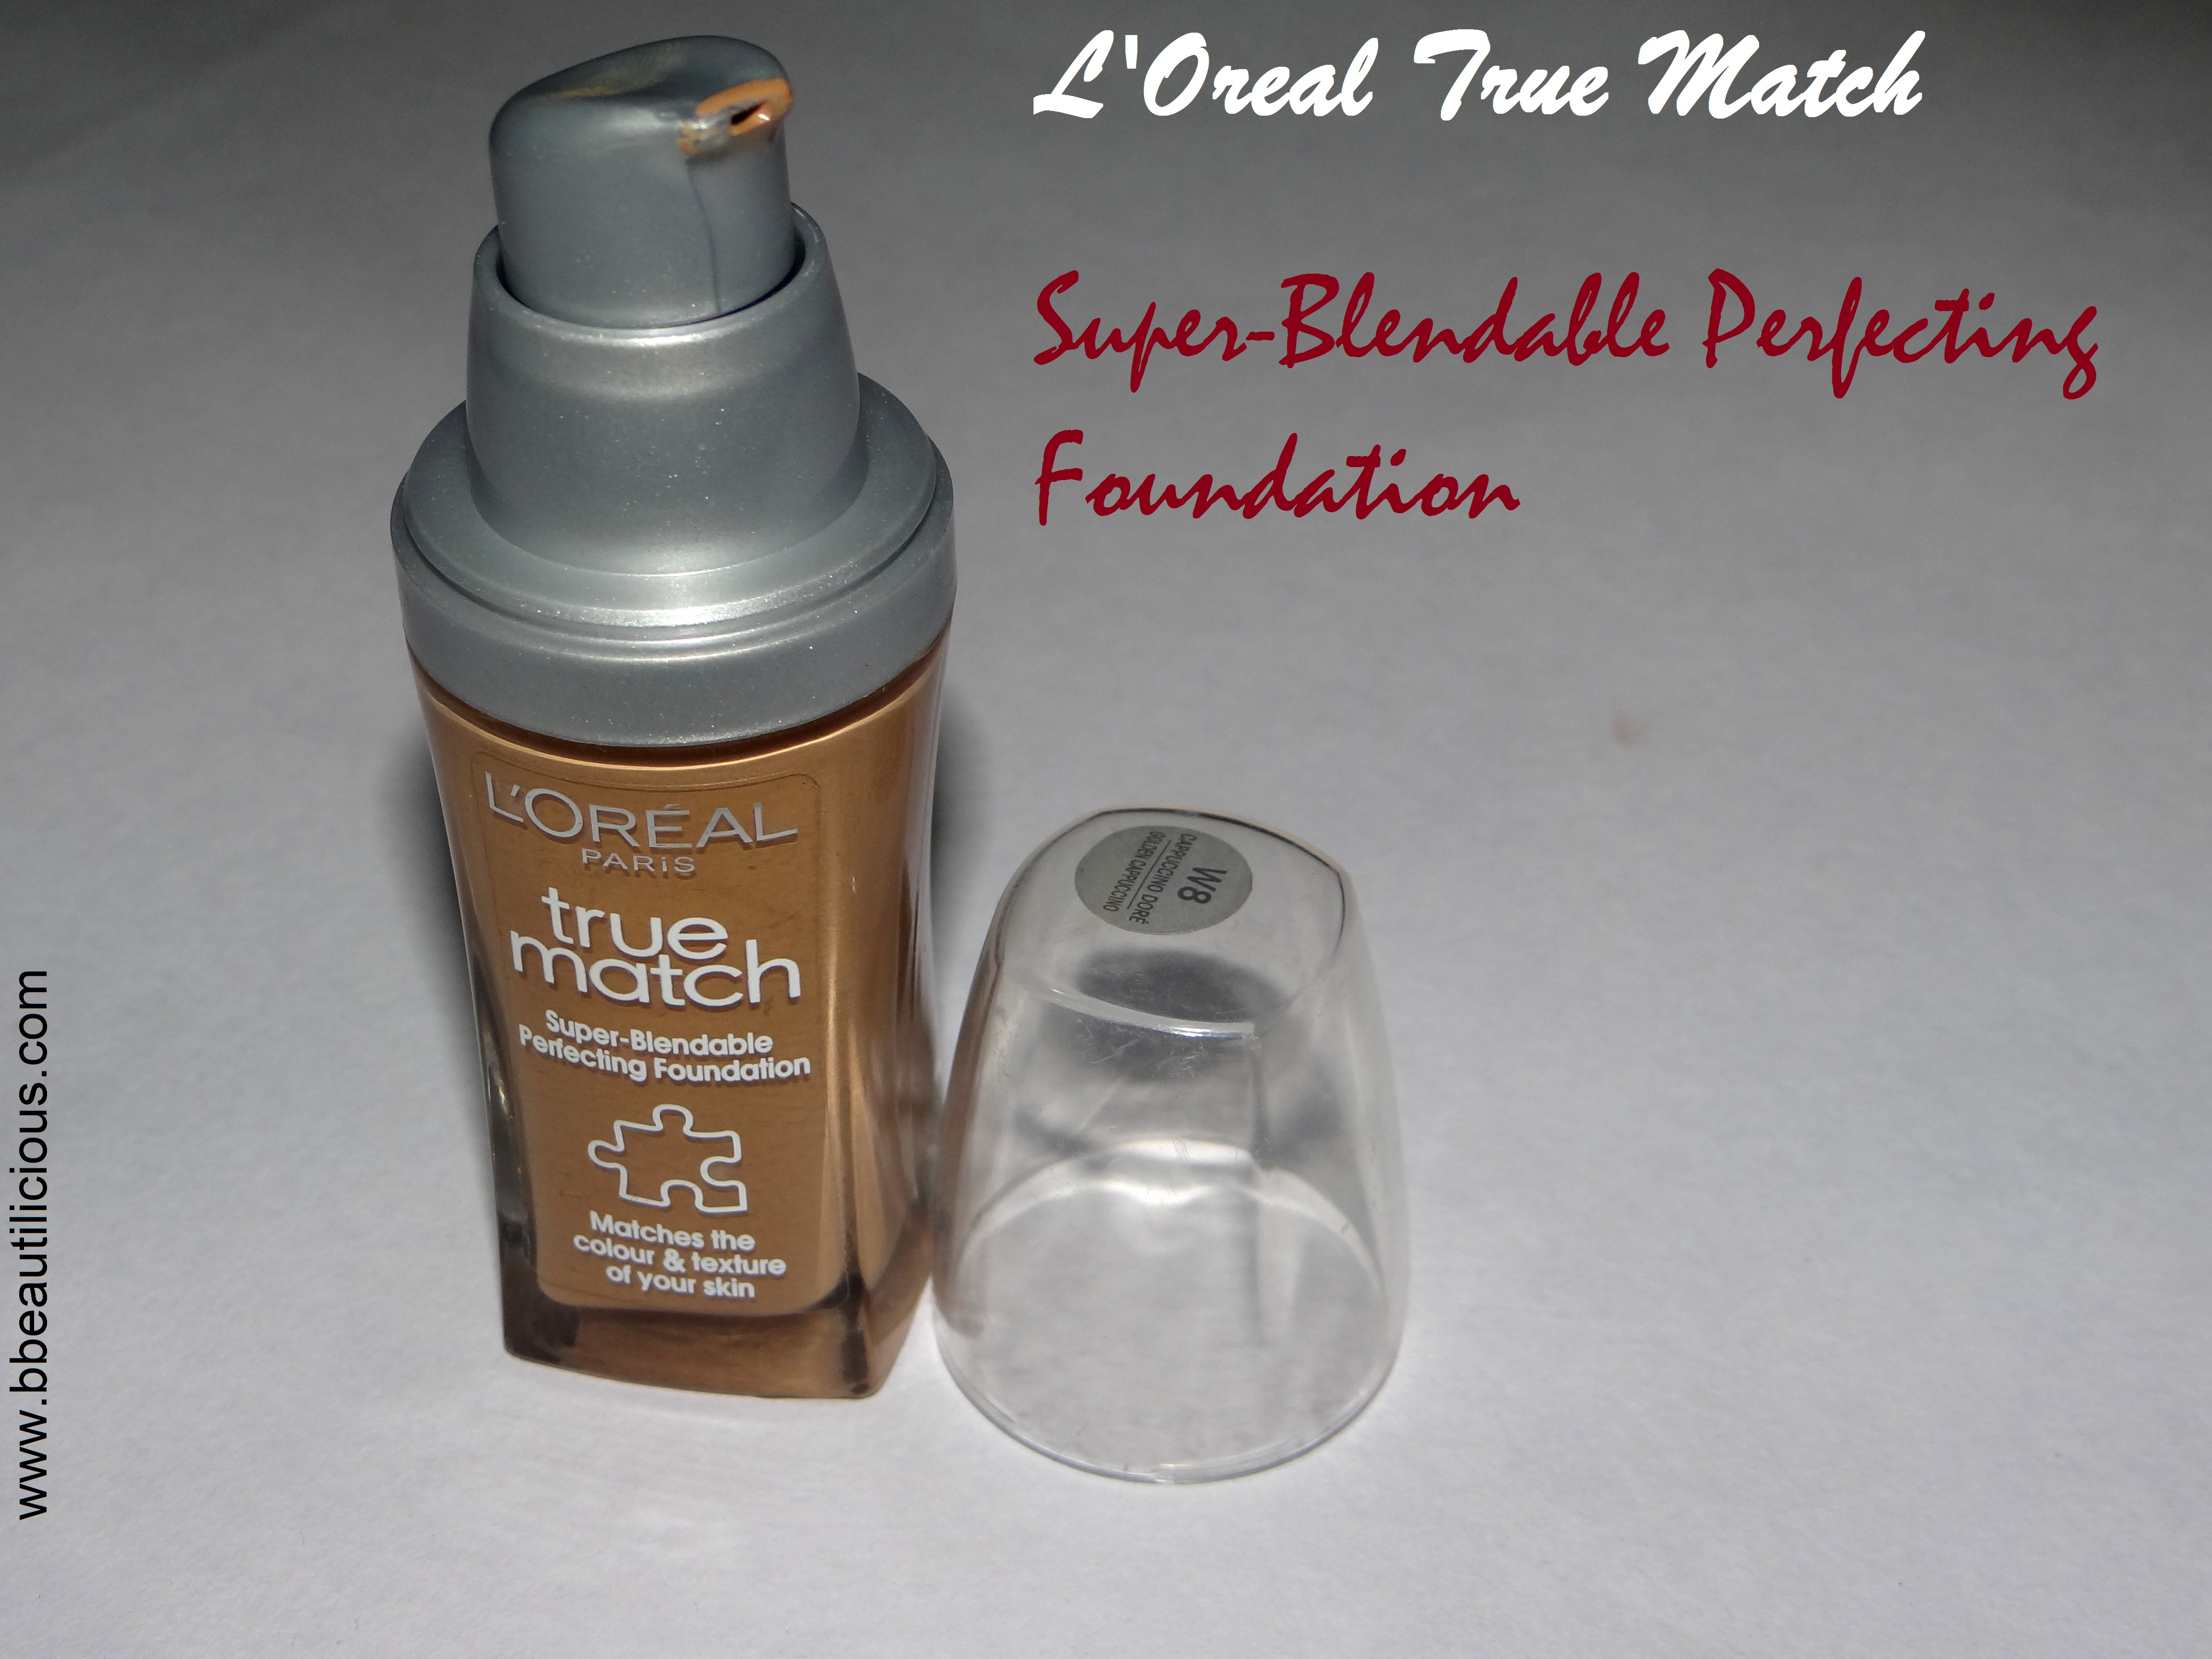 L'Oreal True Math Supper Blendable Skin perfecting foundation warm capuccino